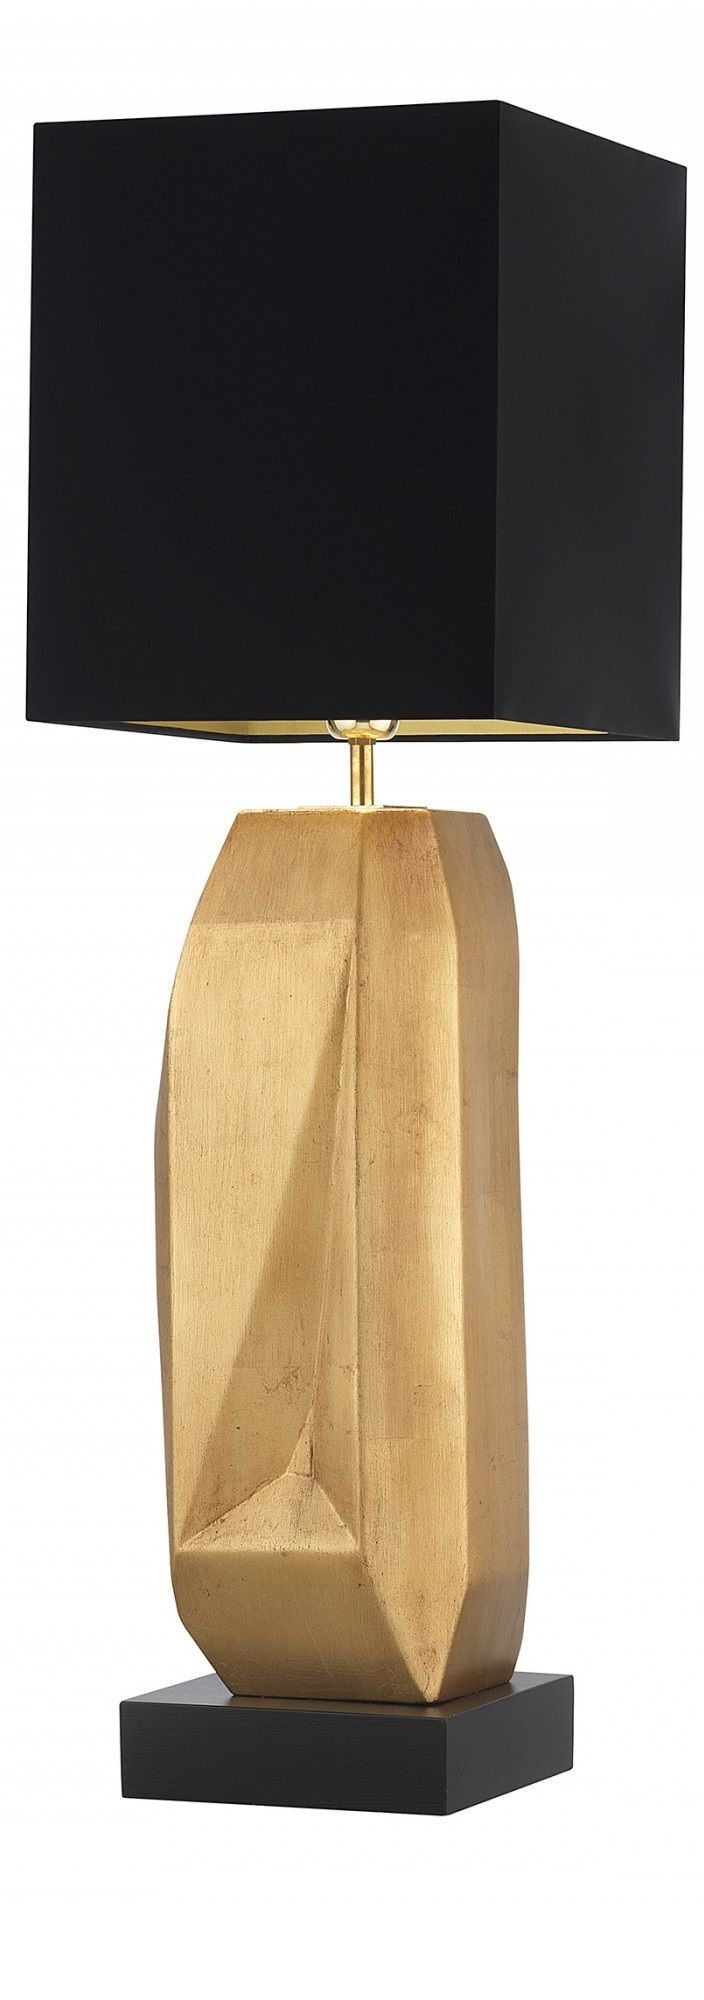 Living room table lamps - Gold Table Lamp Find More Amazing Lighting Http Www Bocadolobo Living Room